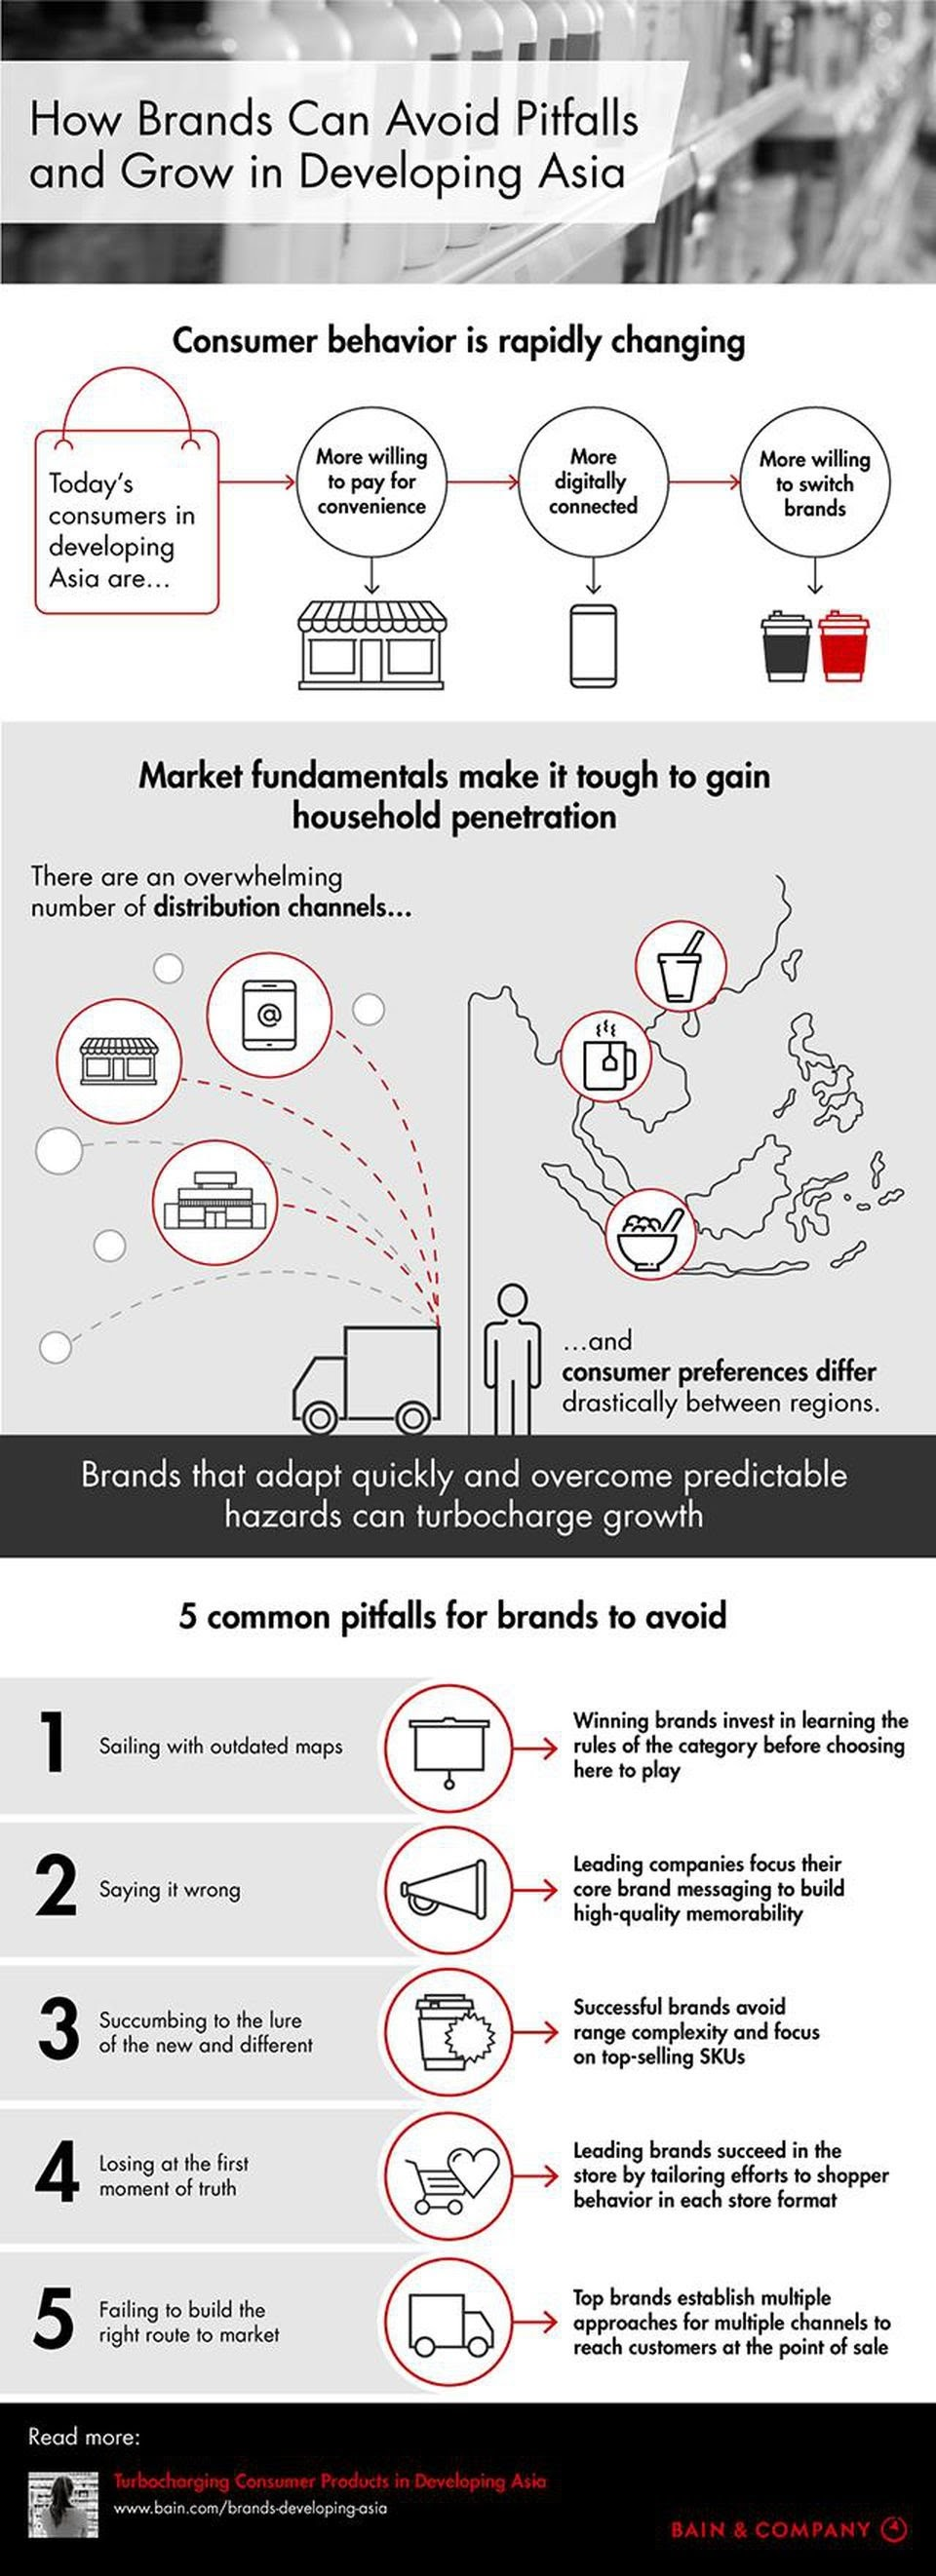 How Brands Can Get Ahead In Developing Asia